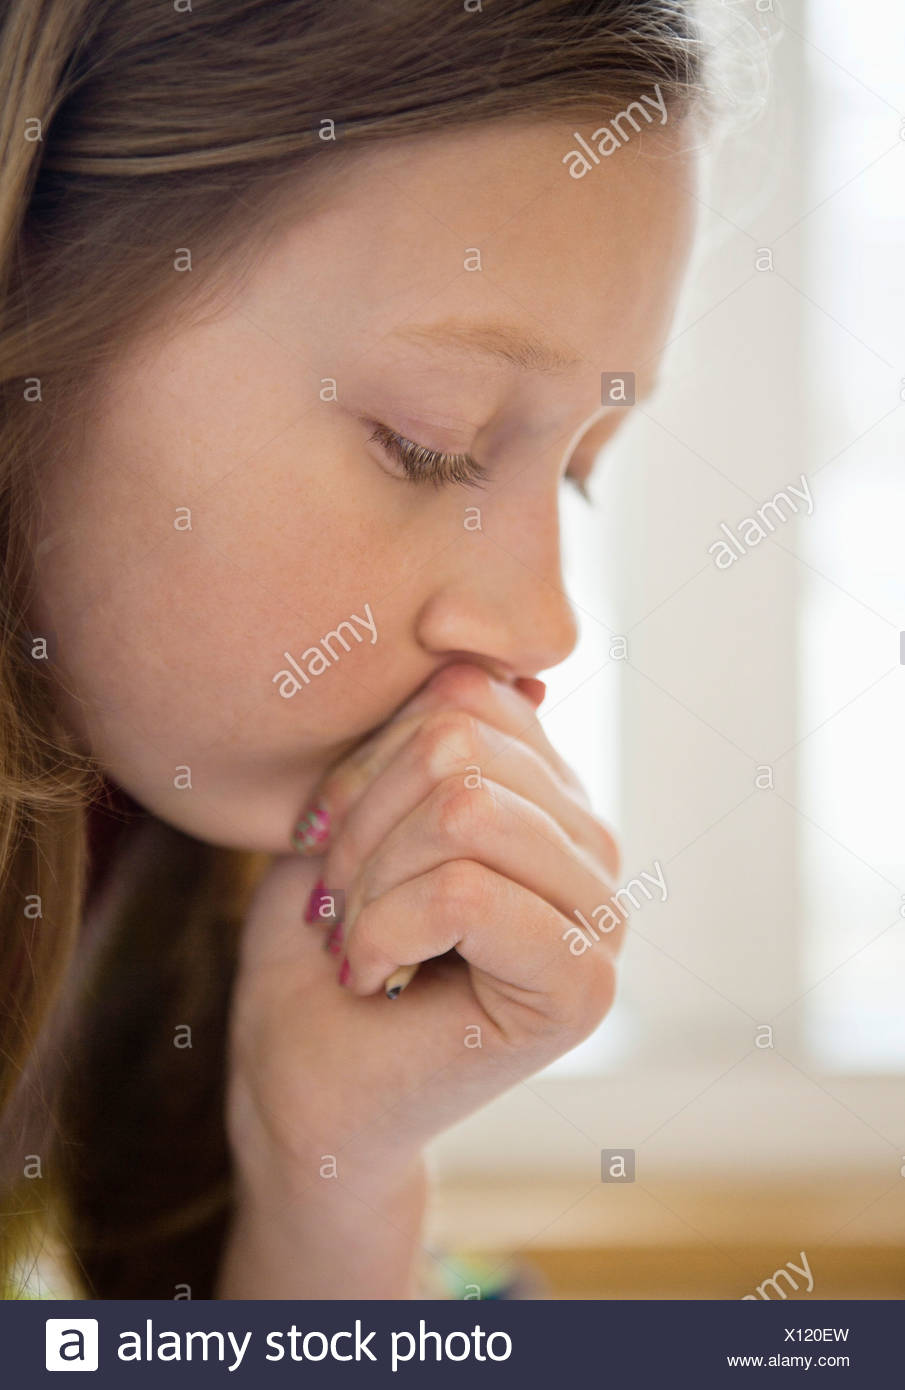 Close-up of girl concentrating on something - Stock Image